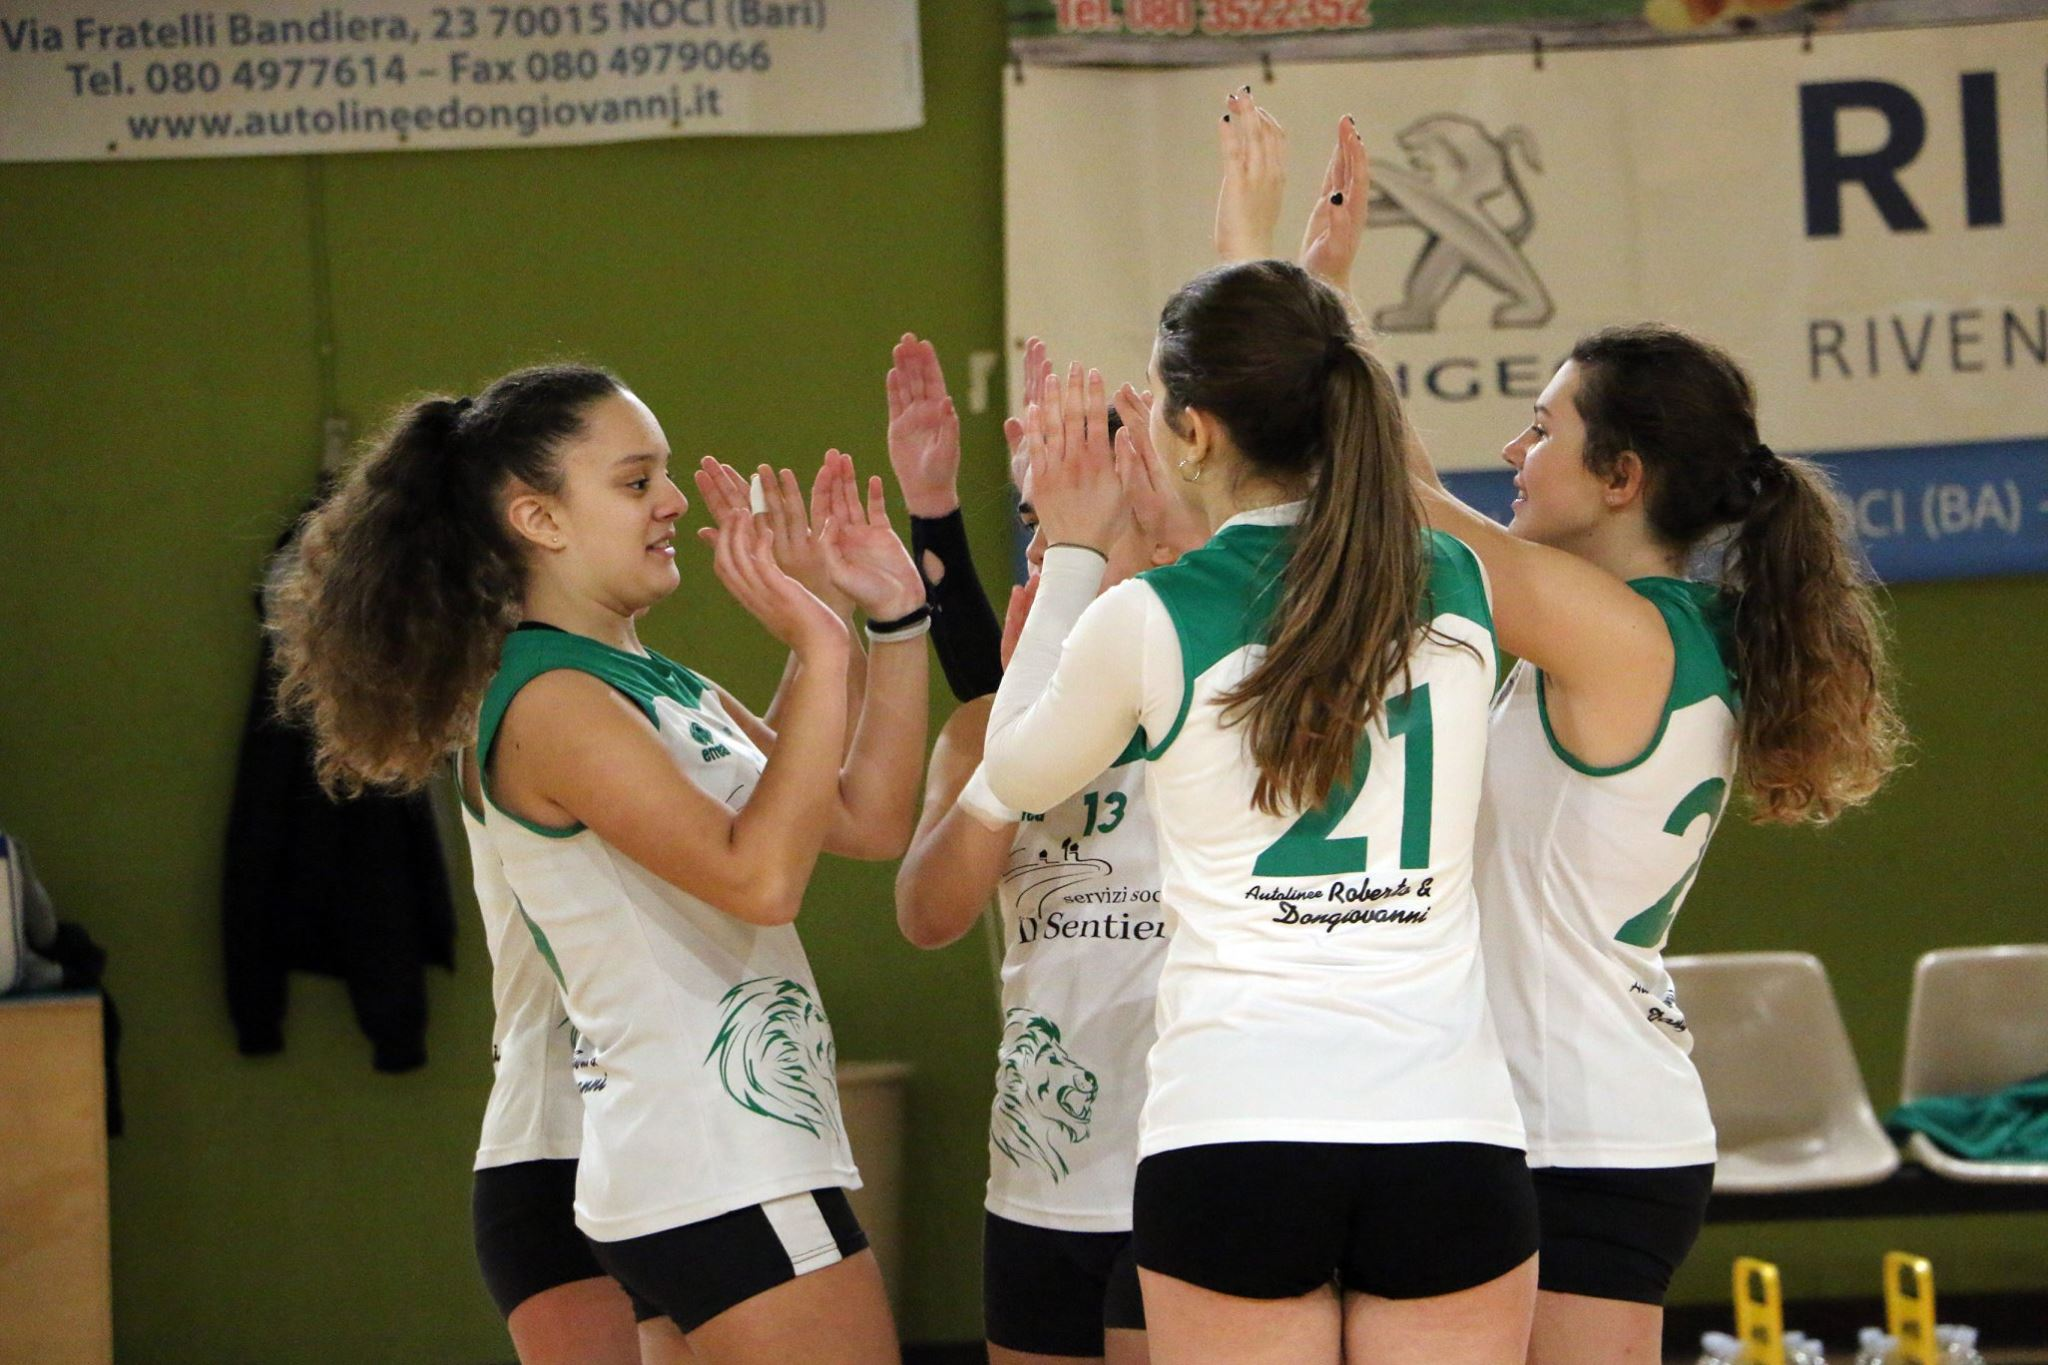 03 10 seconda divisione real volley noci